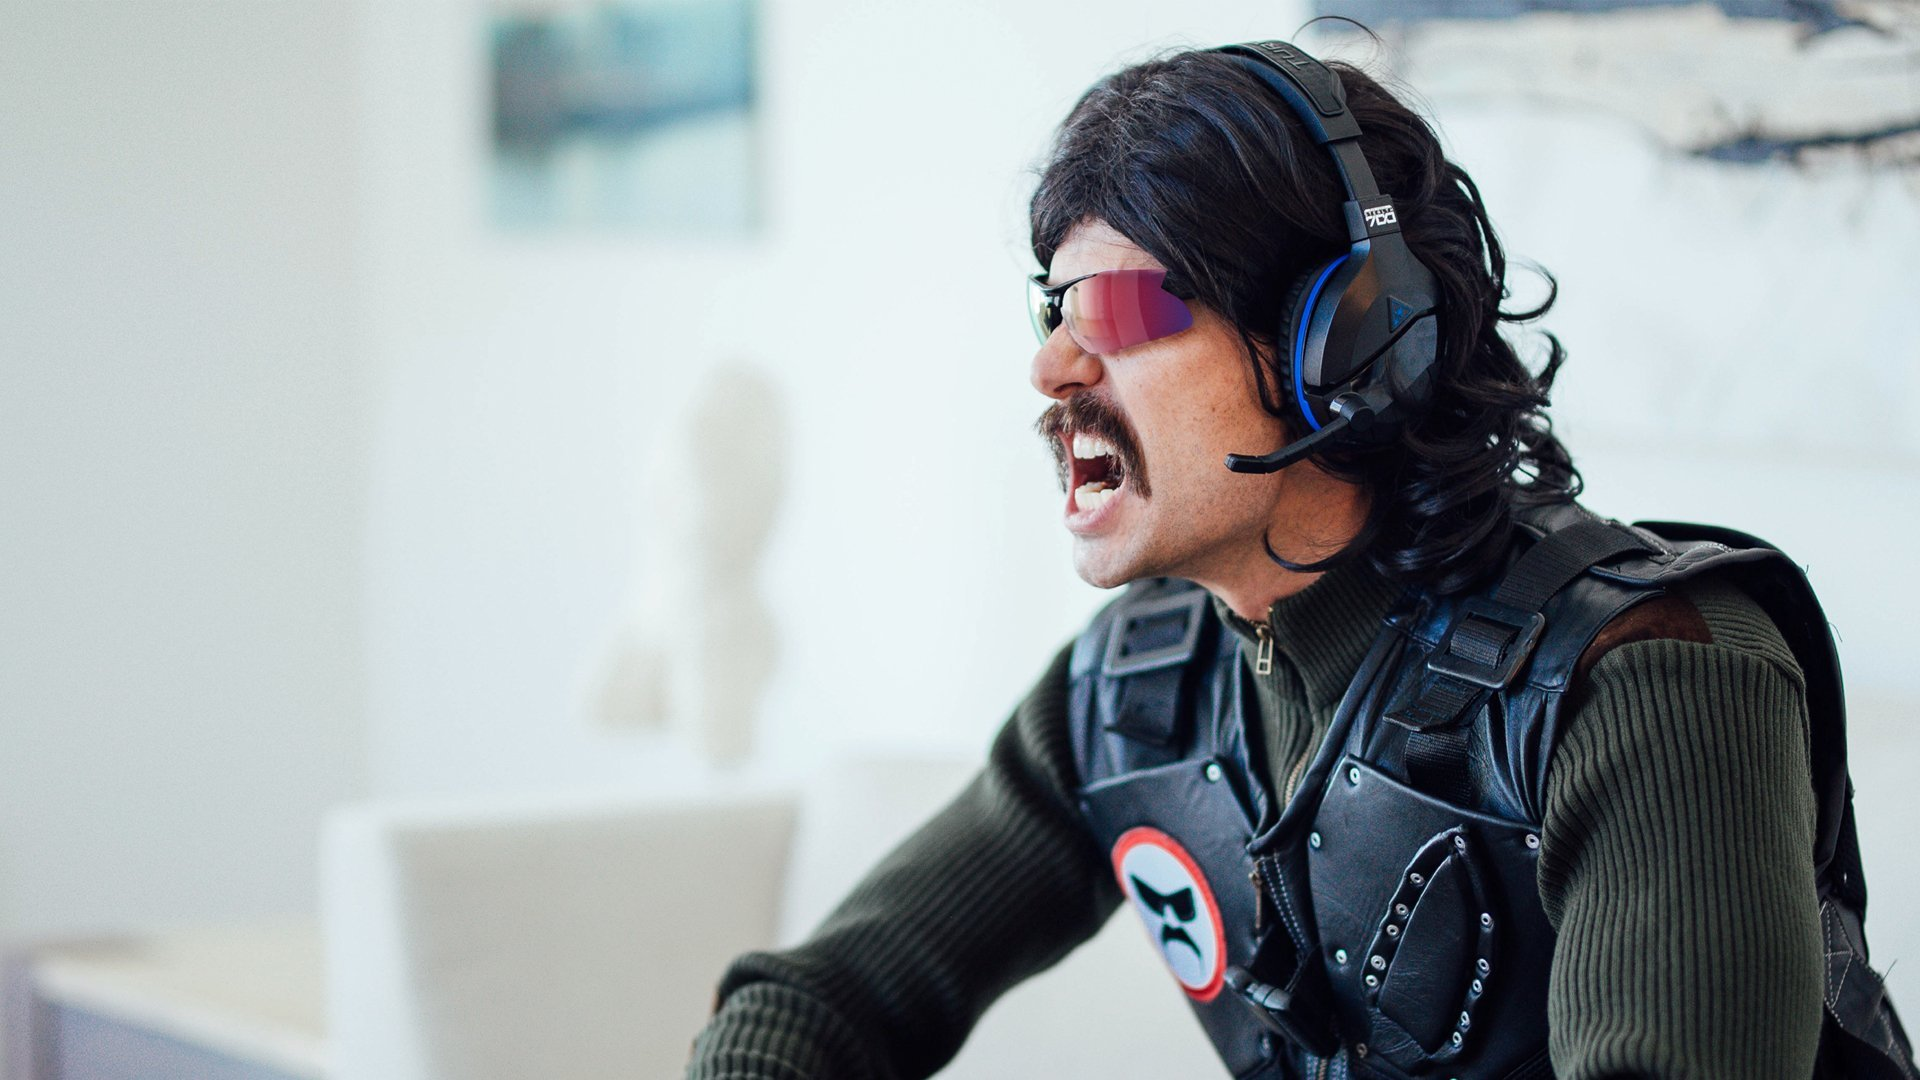 The ban will likely have no impact on Dr. Disrespect in terms of subscriber count or revenue.